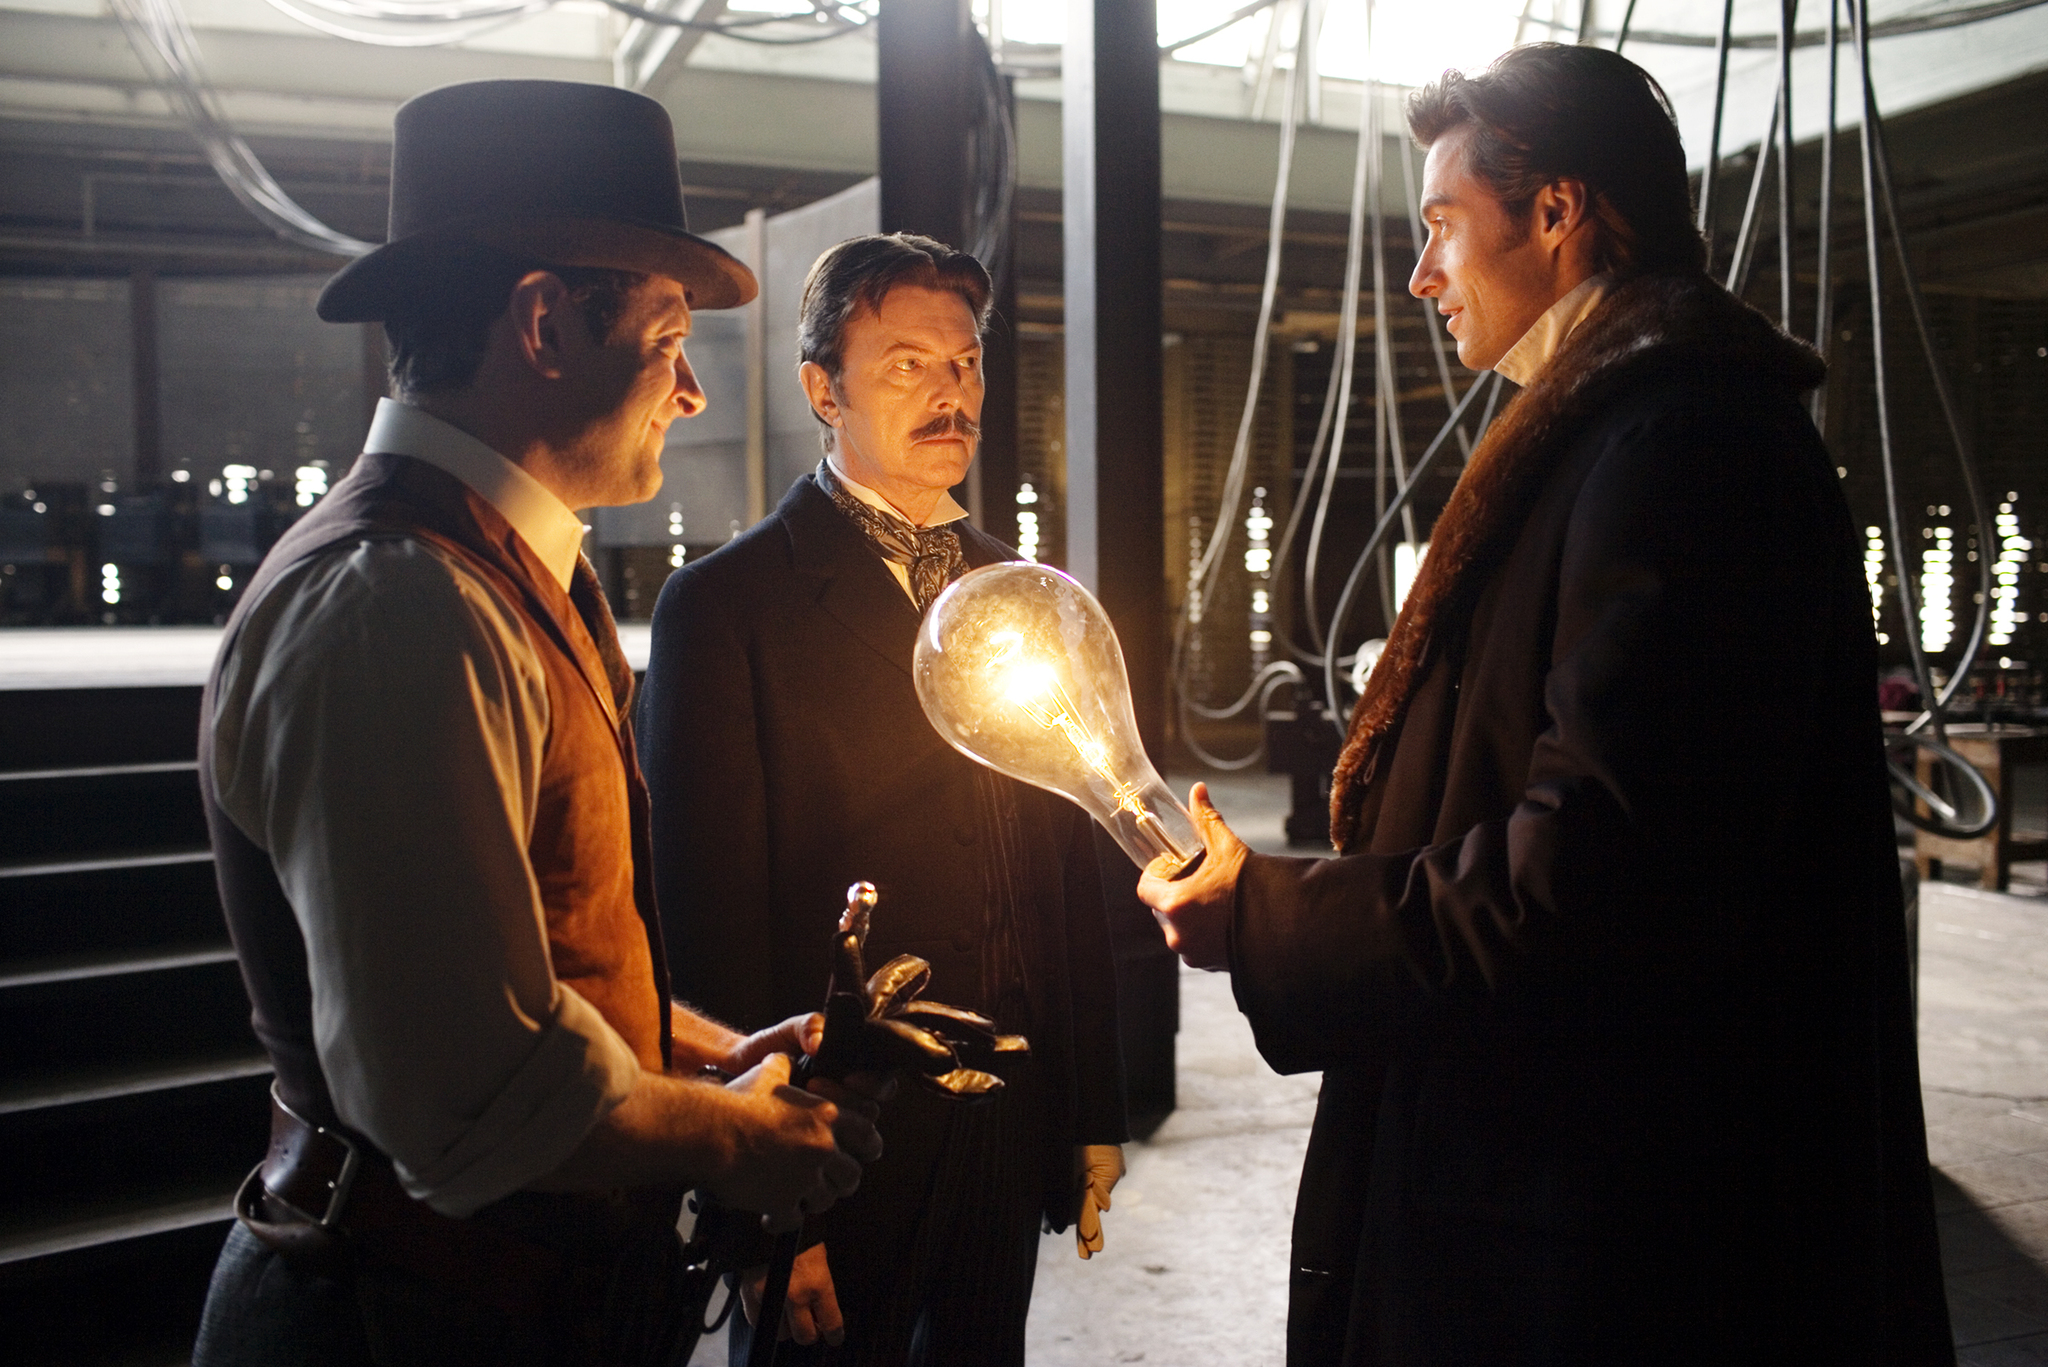 David Bowie, Hugh Jackman, and Andy Serkis in The Prestige (2006)